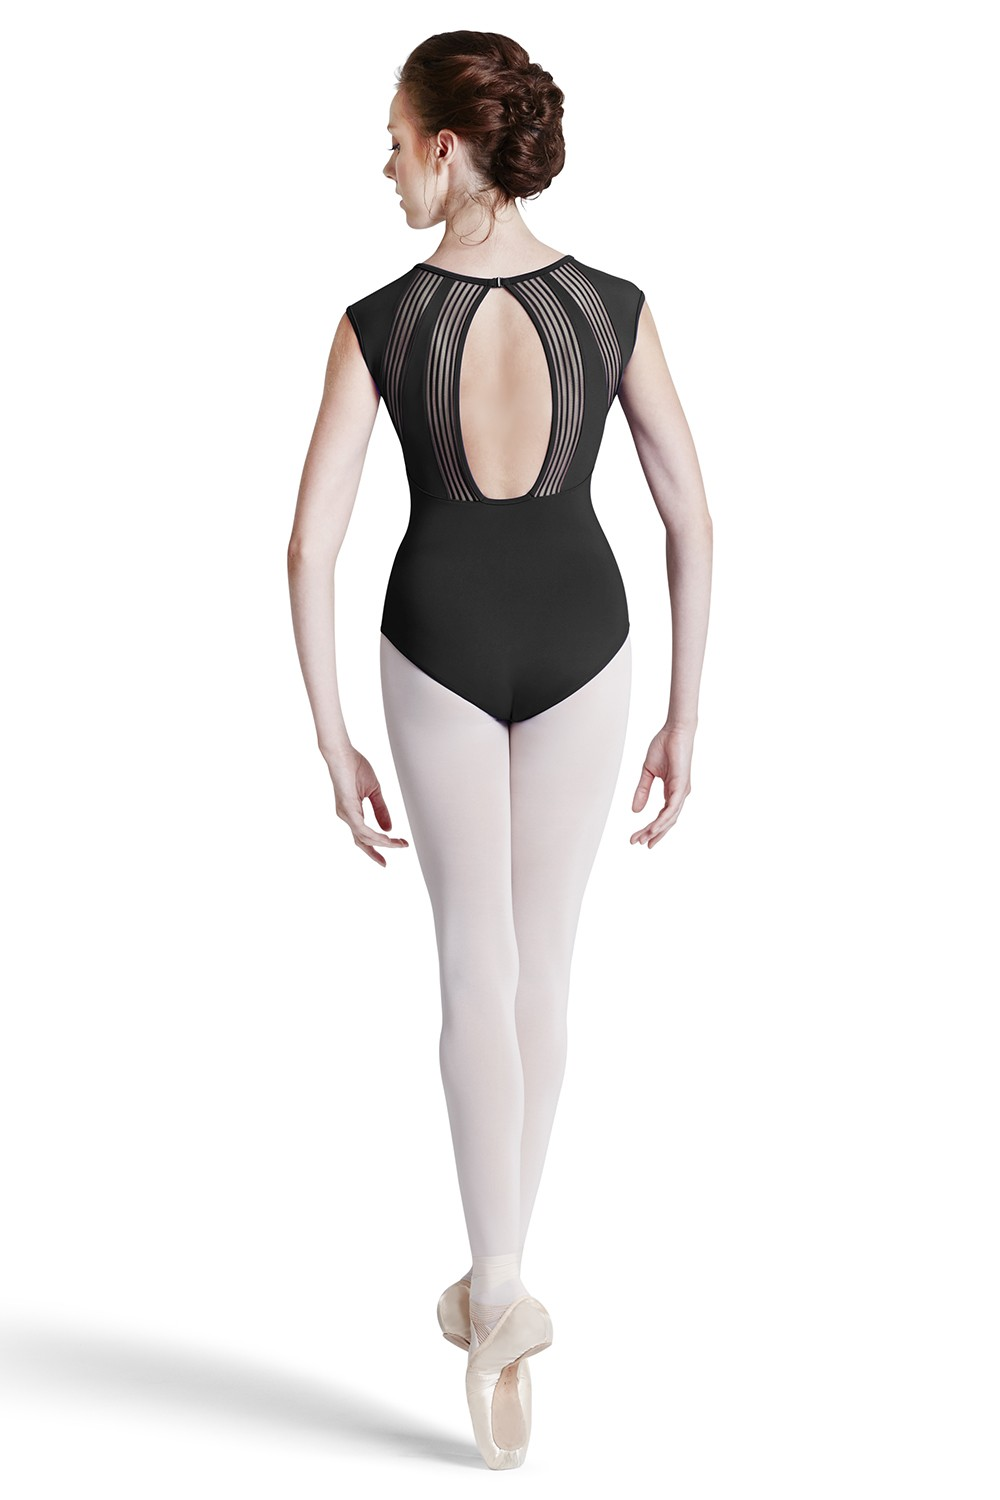 Lace Capsleeve Leo Women's Dance Leotards